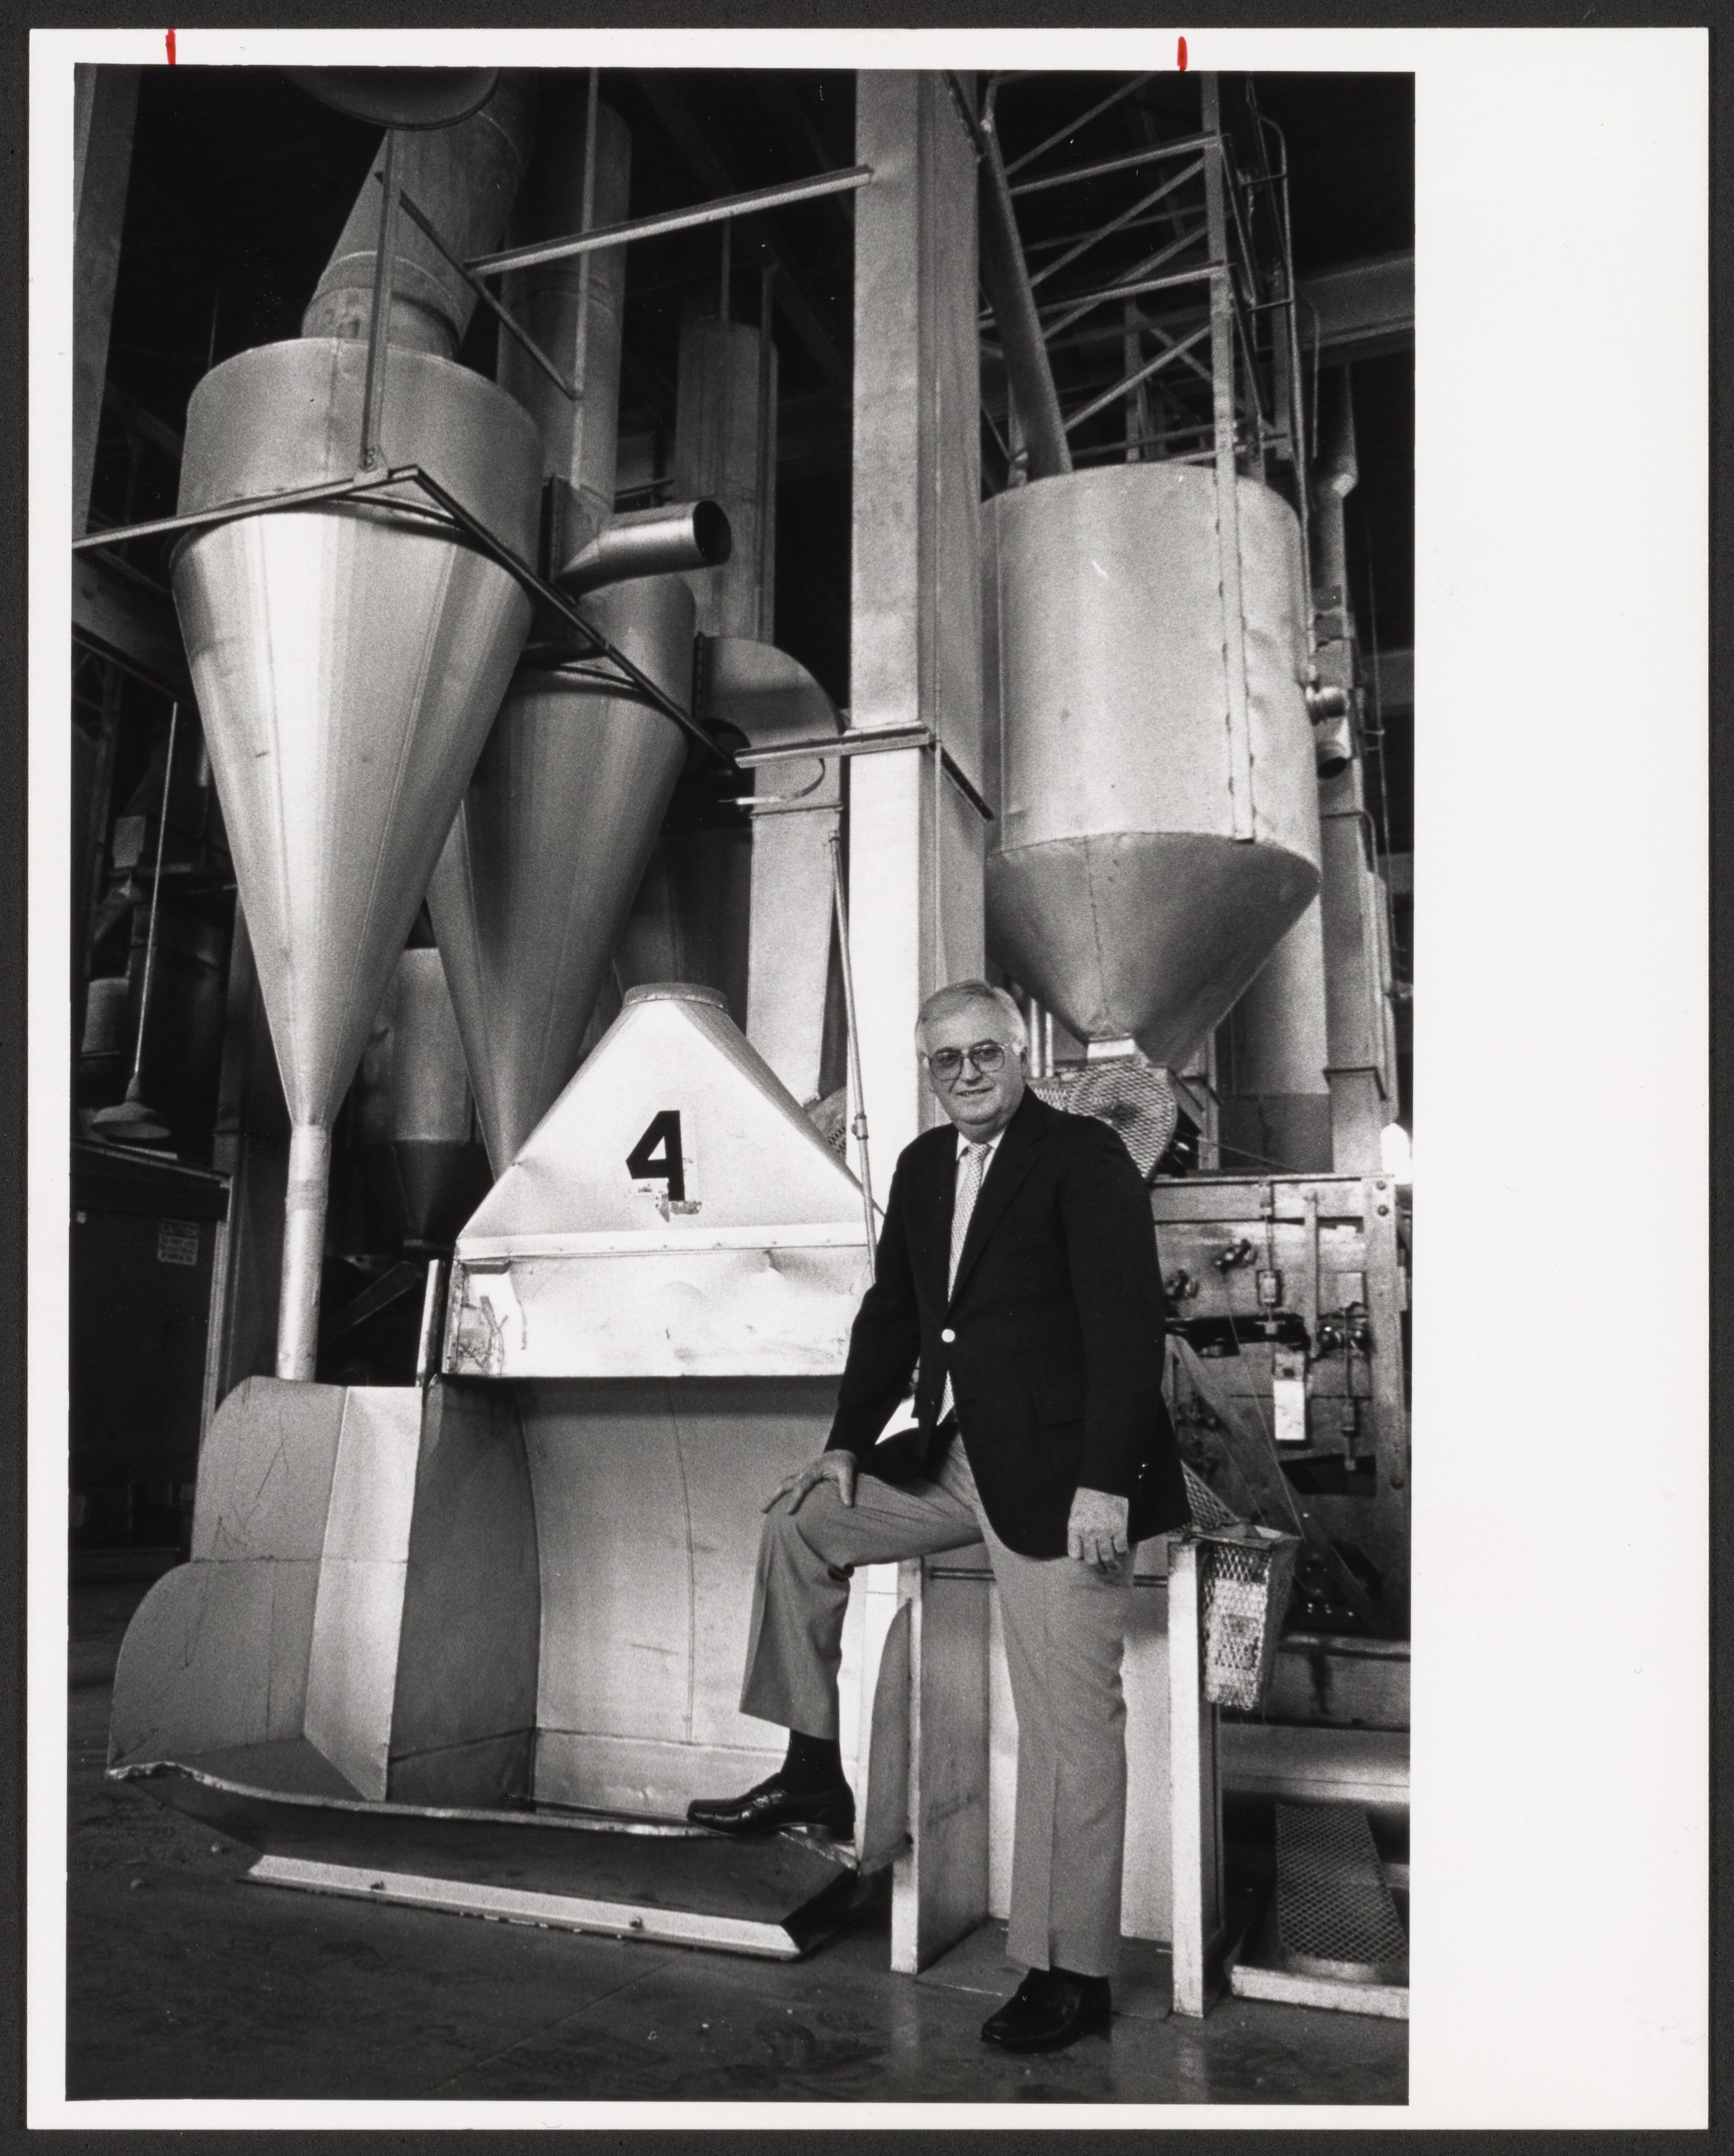 Man in factory, 1985.